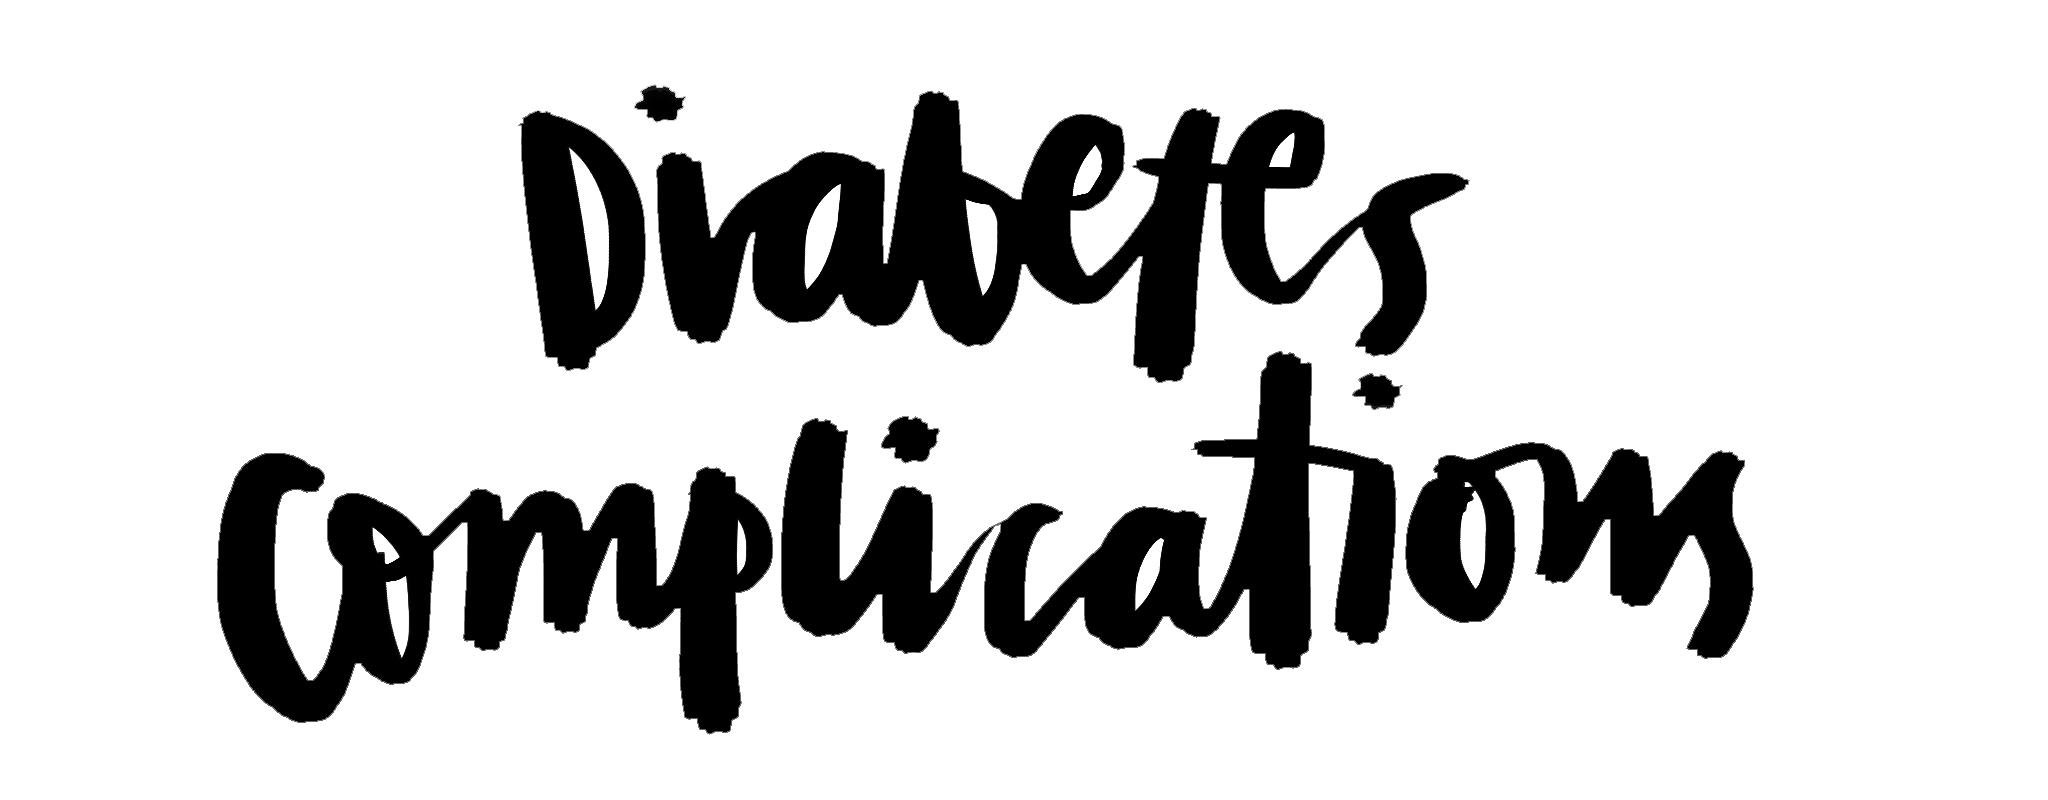 What Complications Can Develop From Having Diabetes?